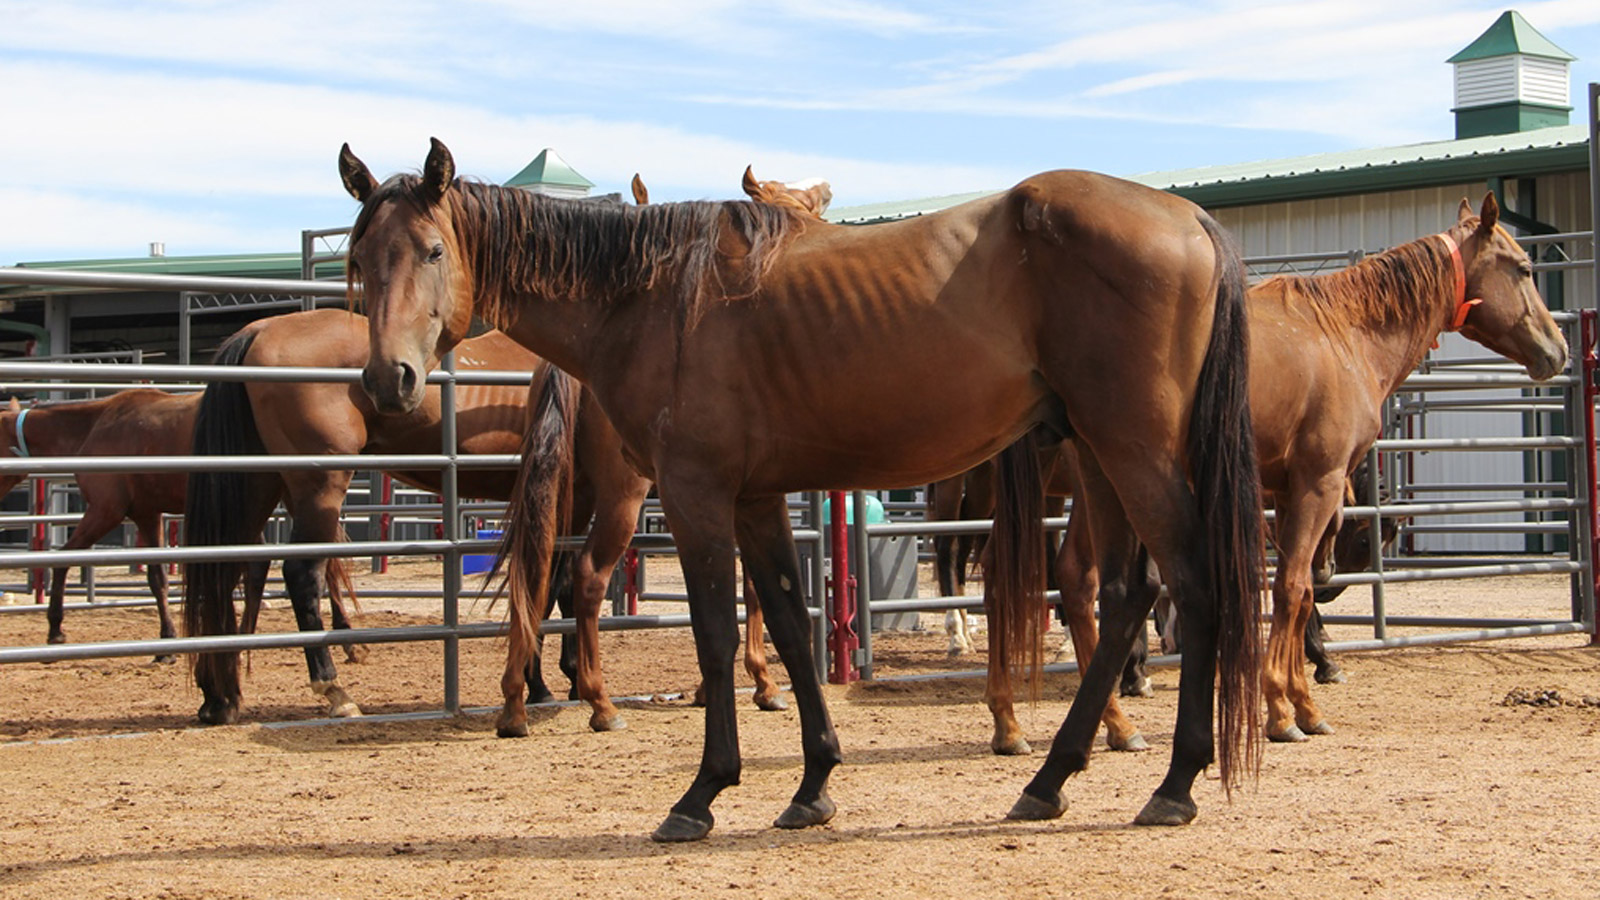 The Dumb Friends League Harmony Equine Center took in 60 abused horses from Texas (credit: DDFL)